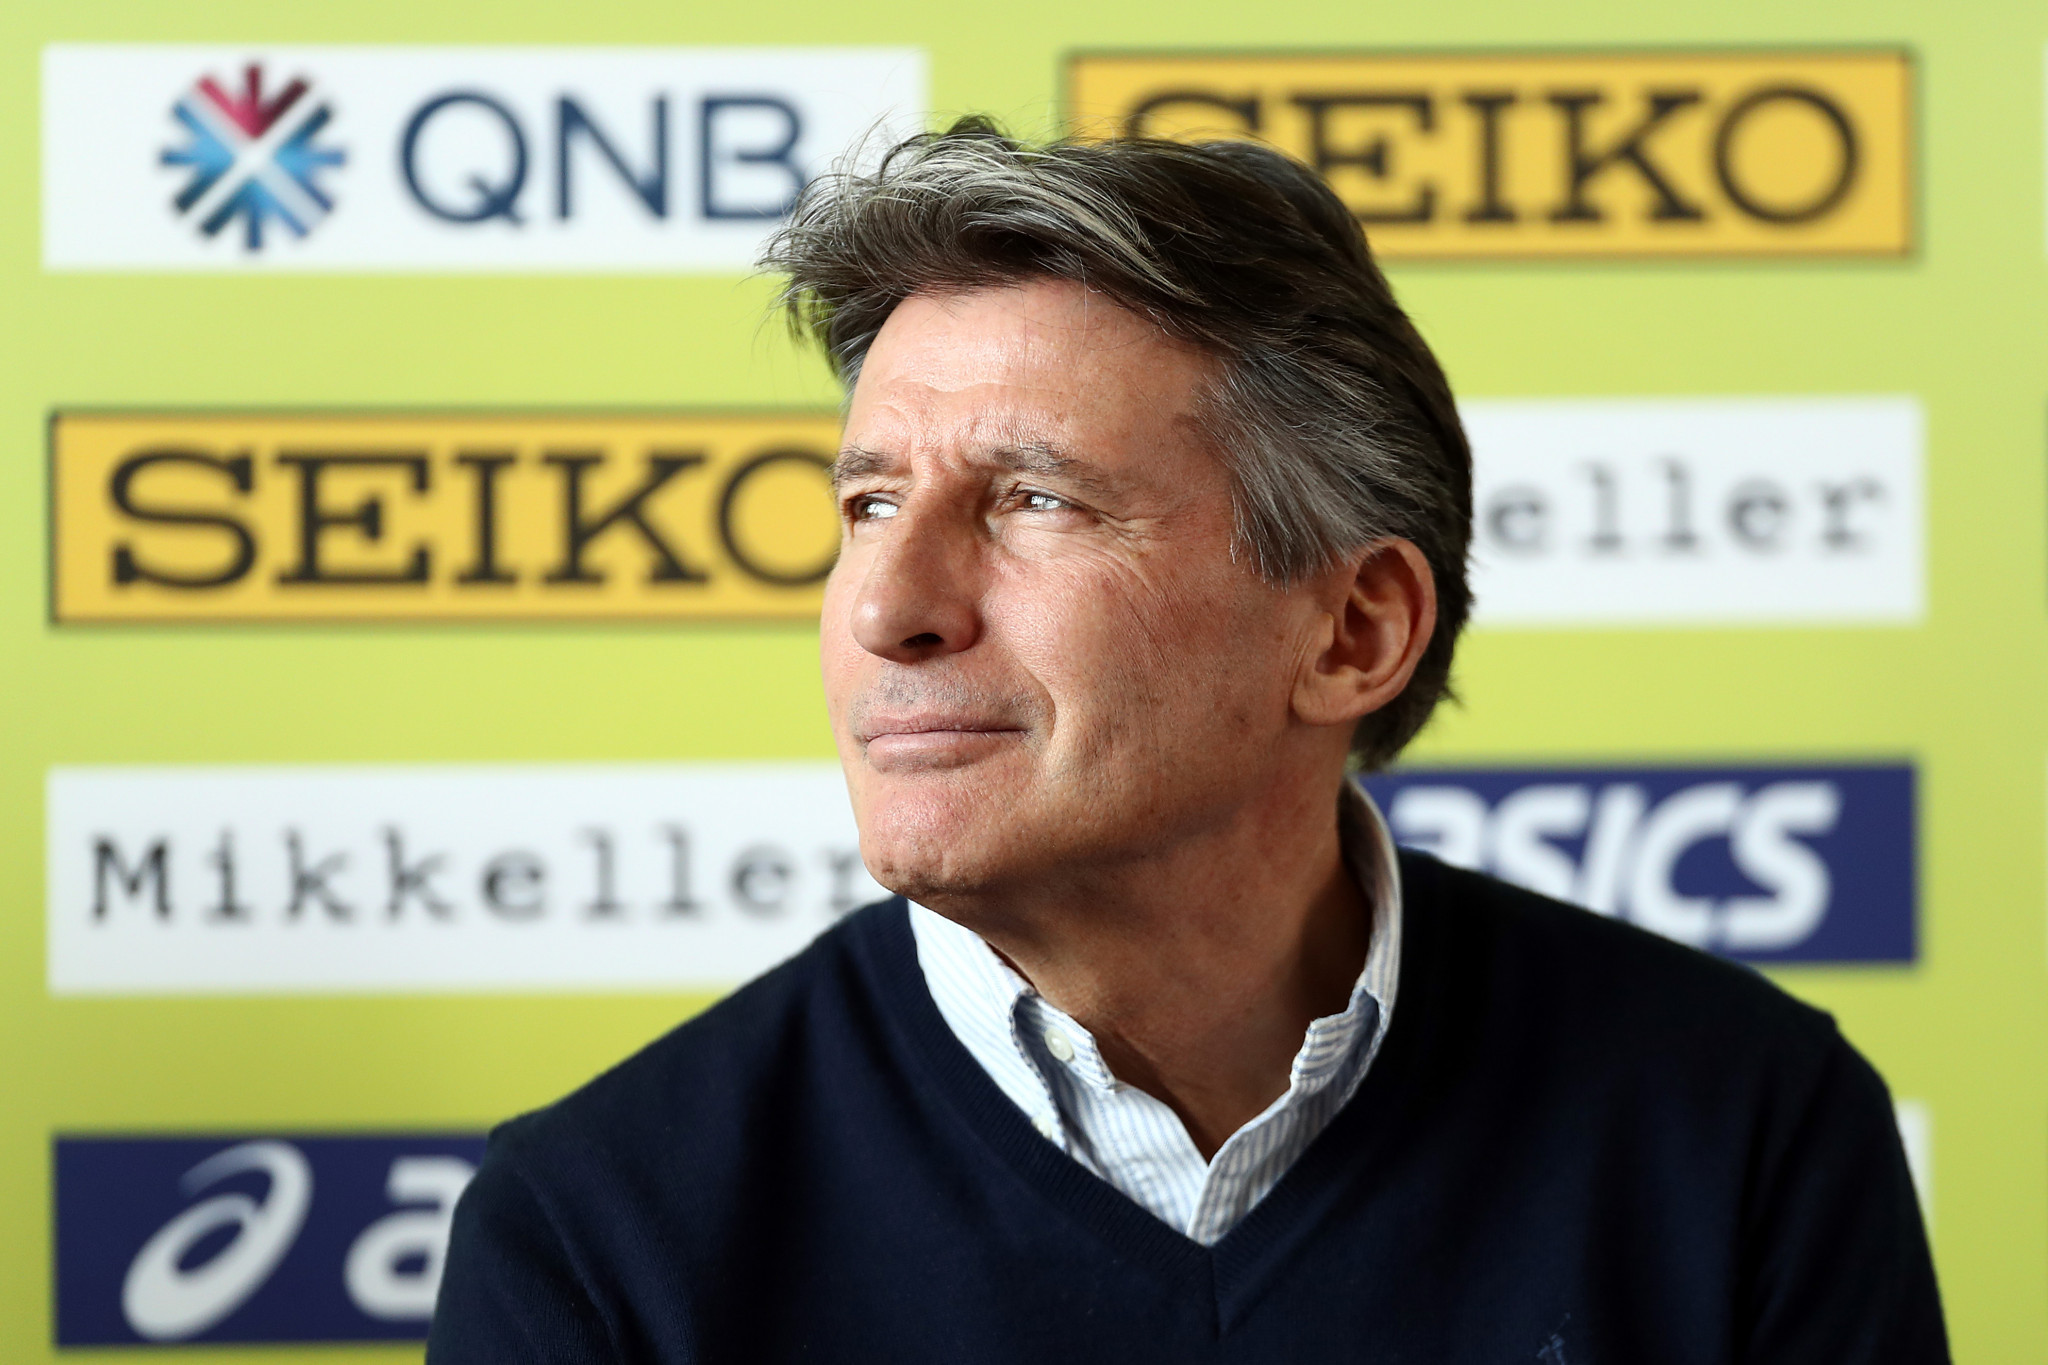 Sebastian Coe is set to be re-elected as President of the IAAF ©Getty Images